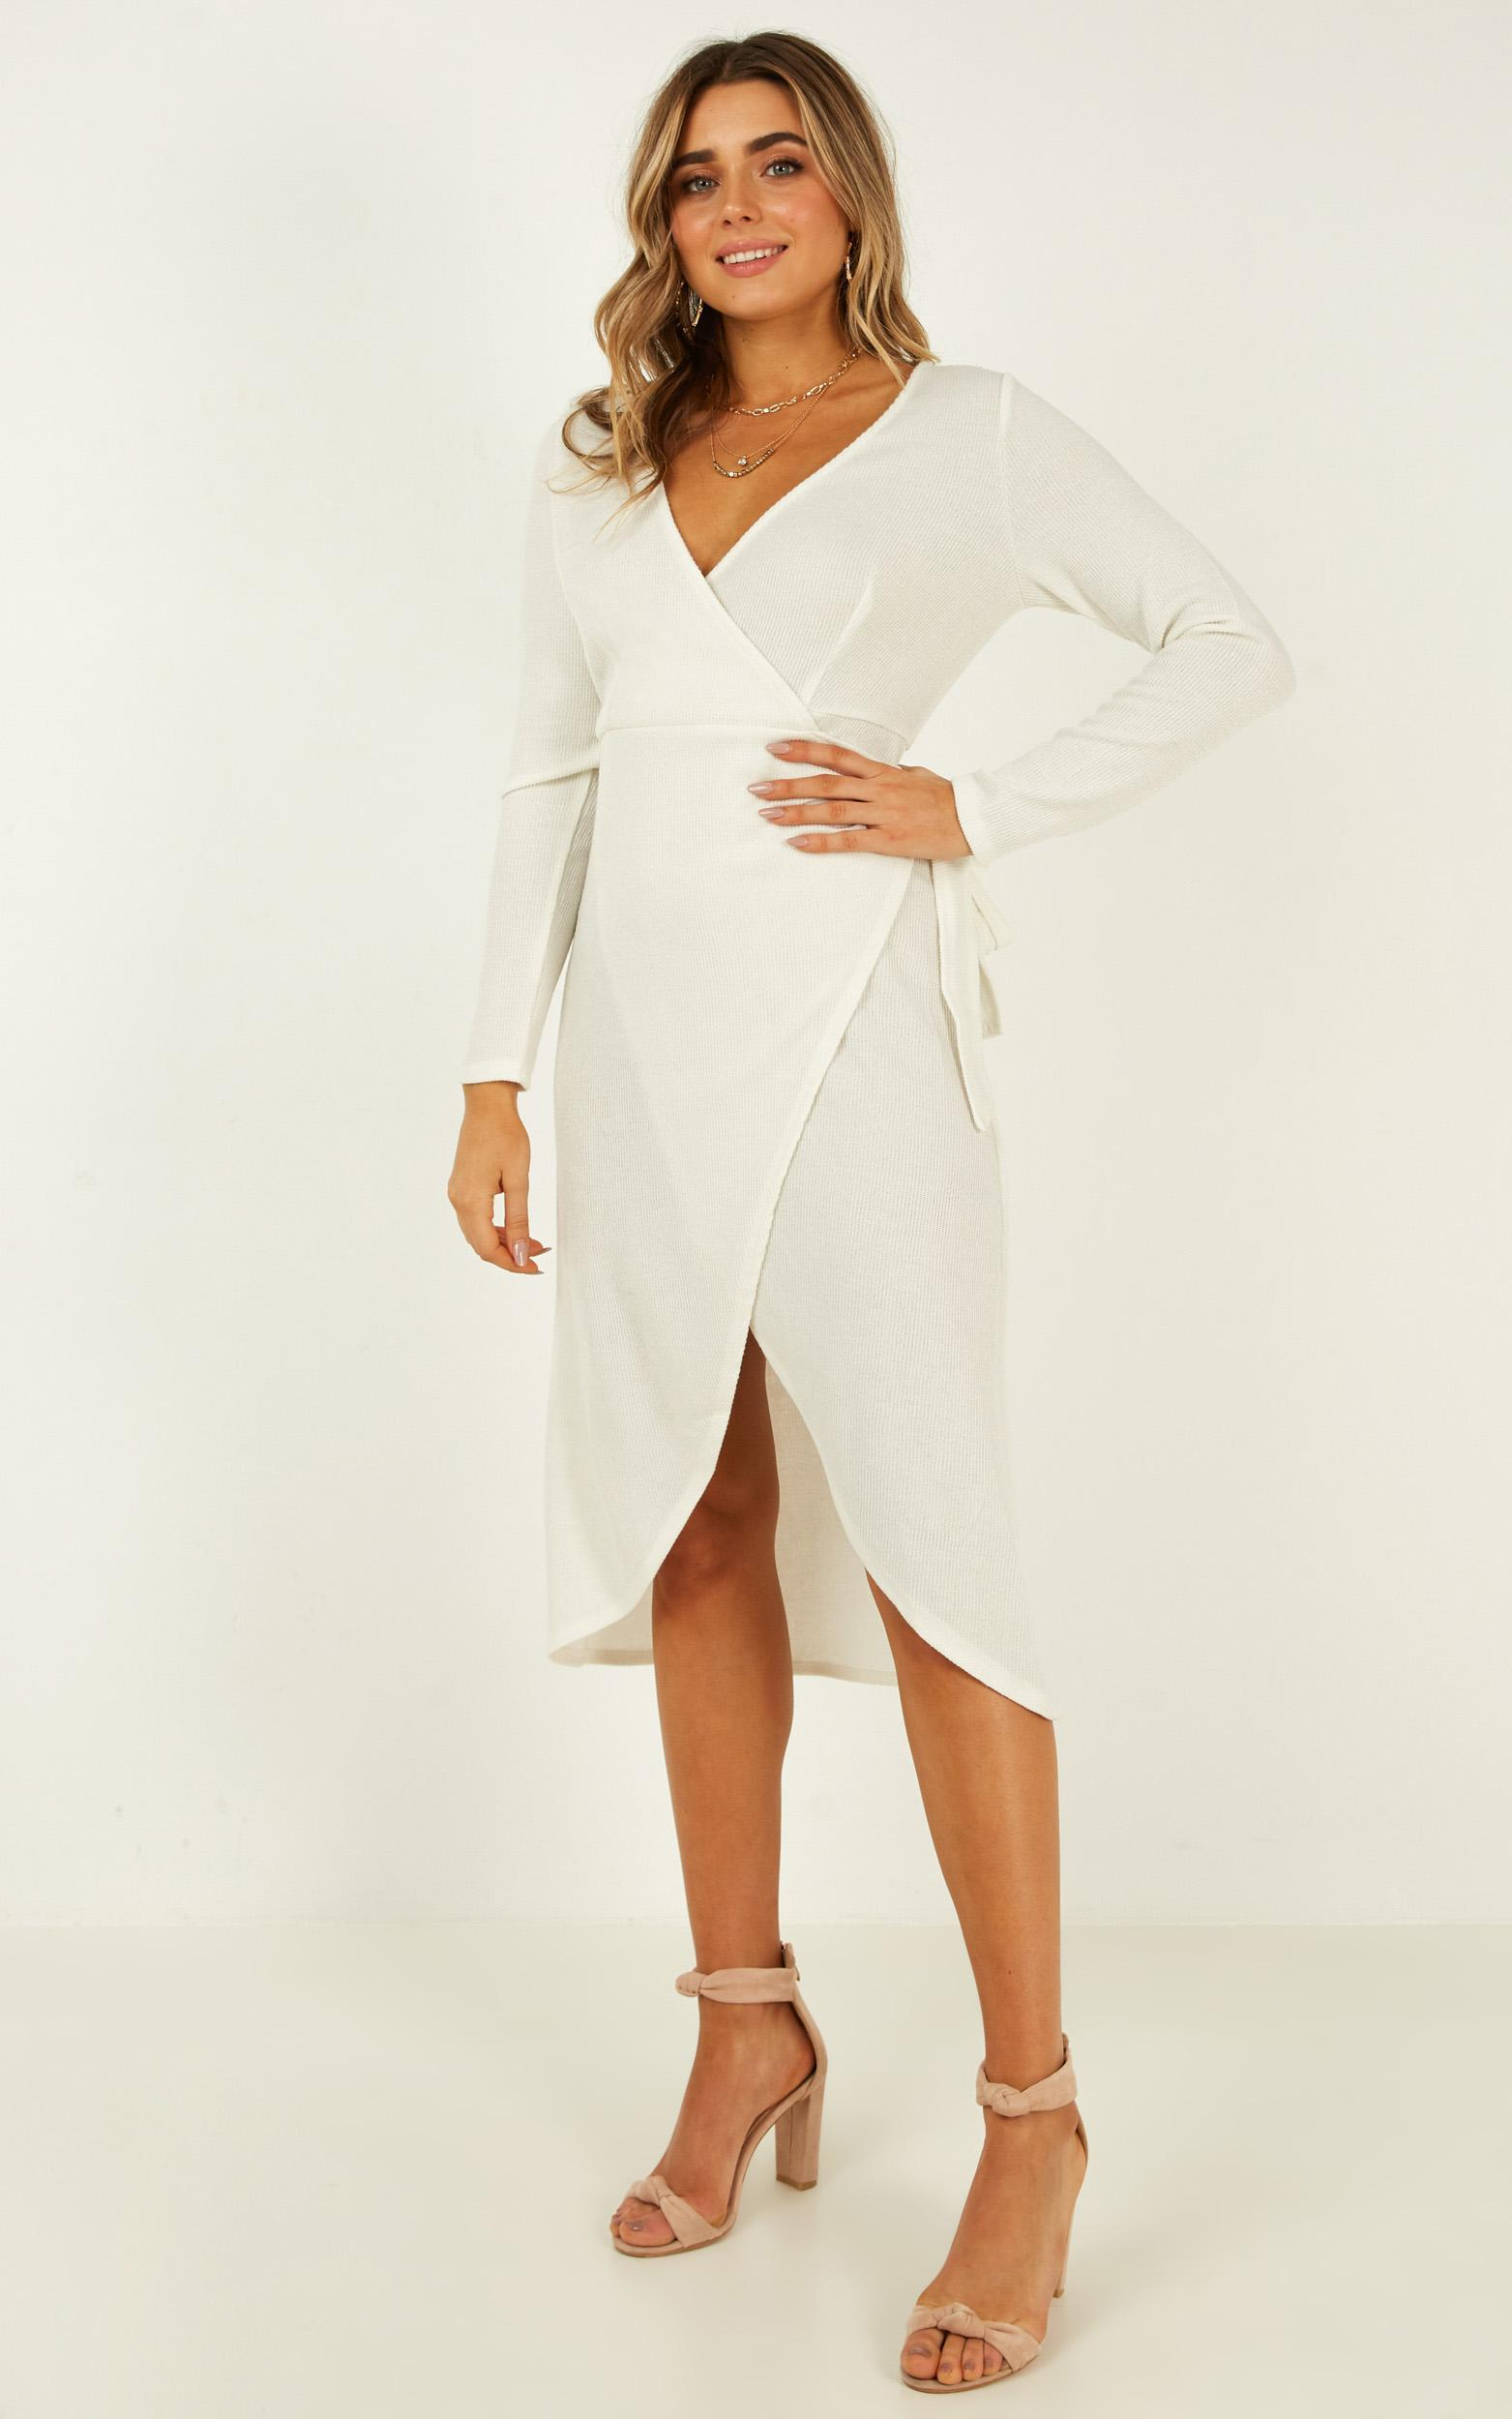 Feeling Electric knit dress in white - 14 (XL), White, hi-res image number null